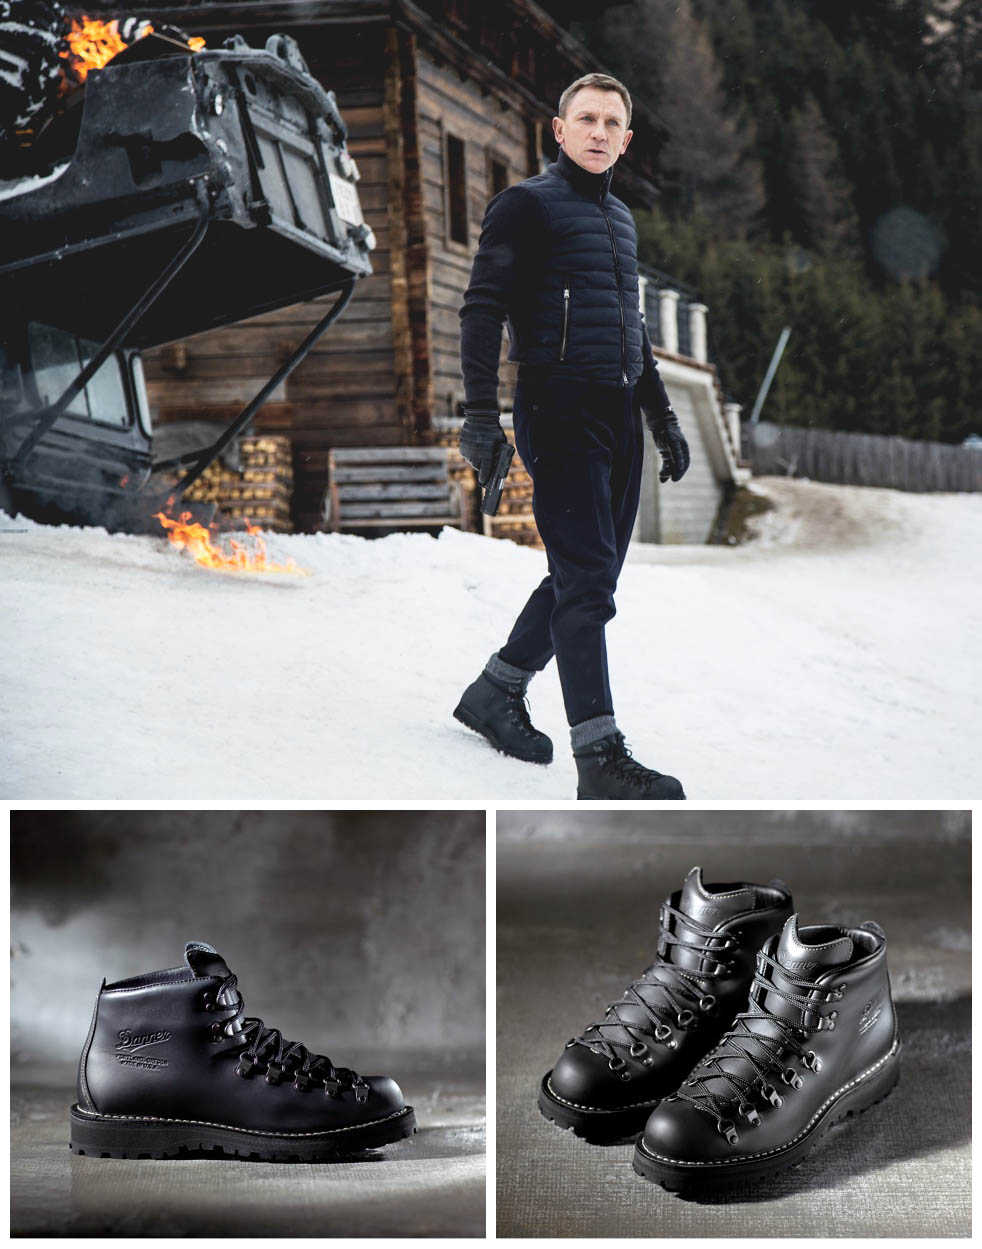 James Bond Specter Boots By Danner Soletopia